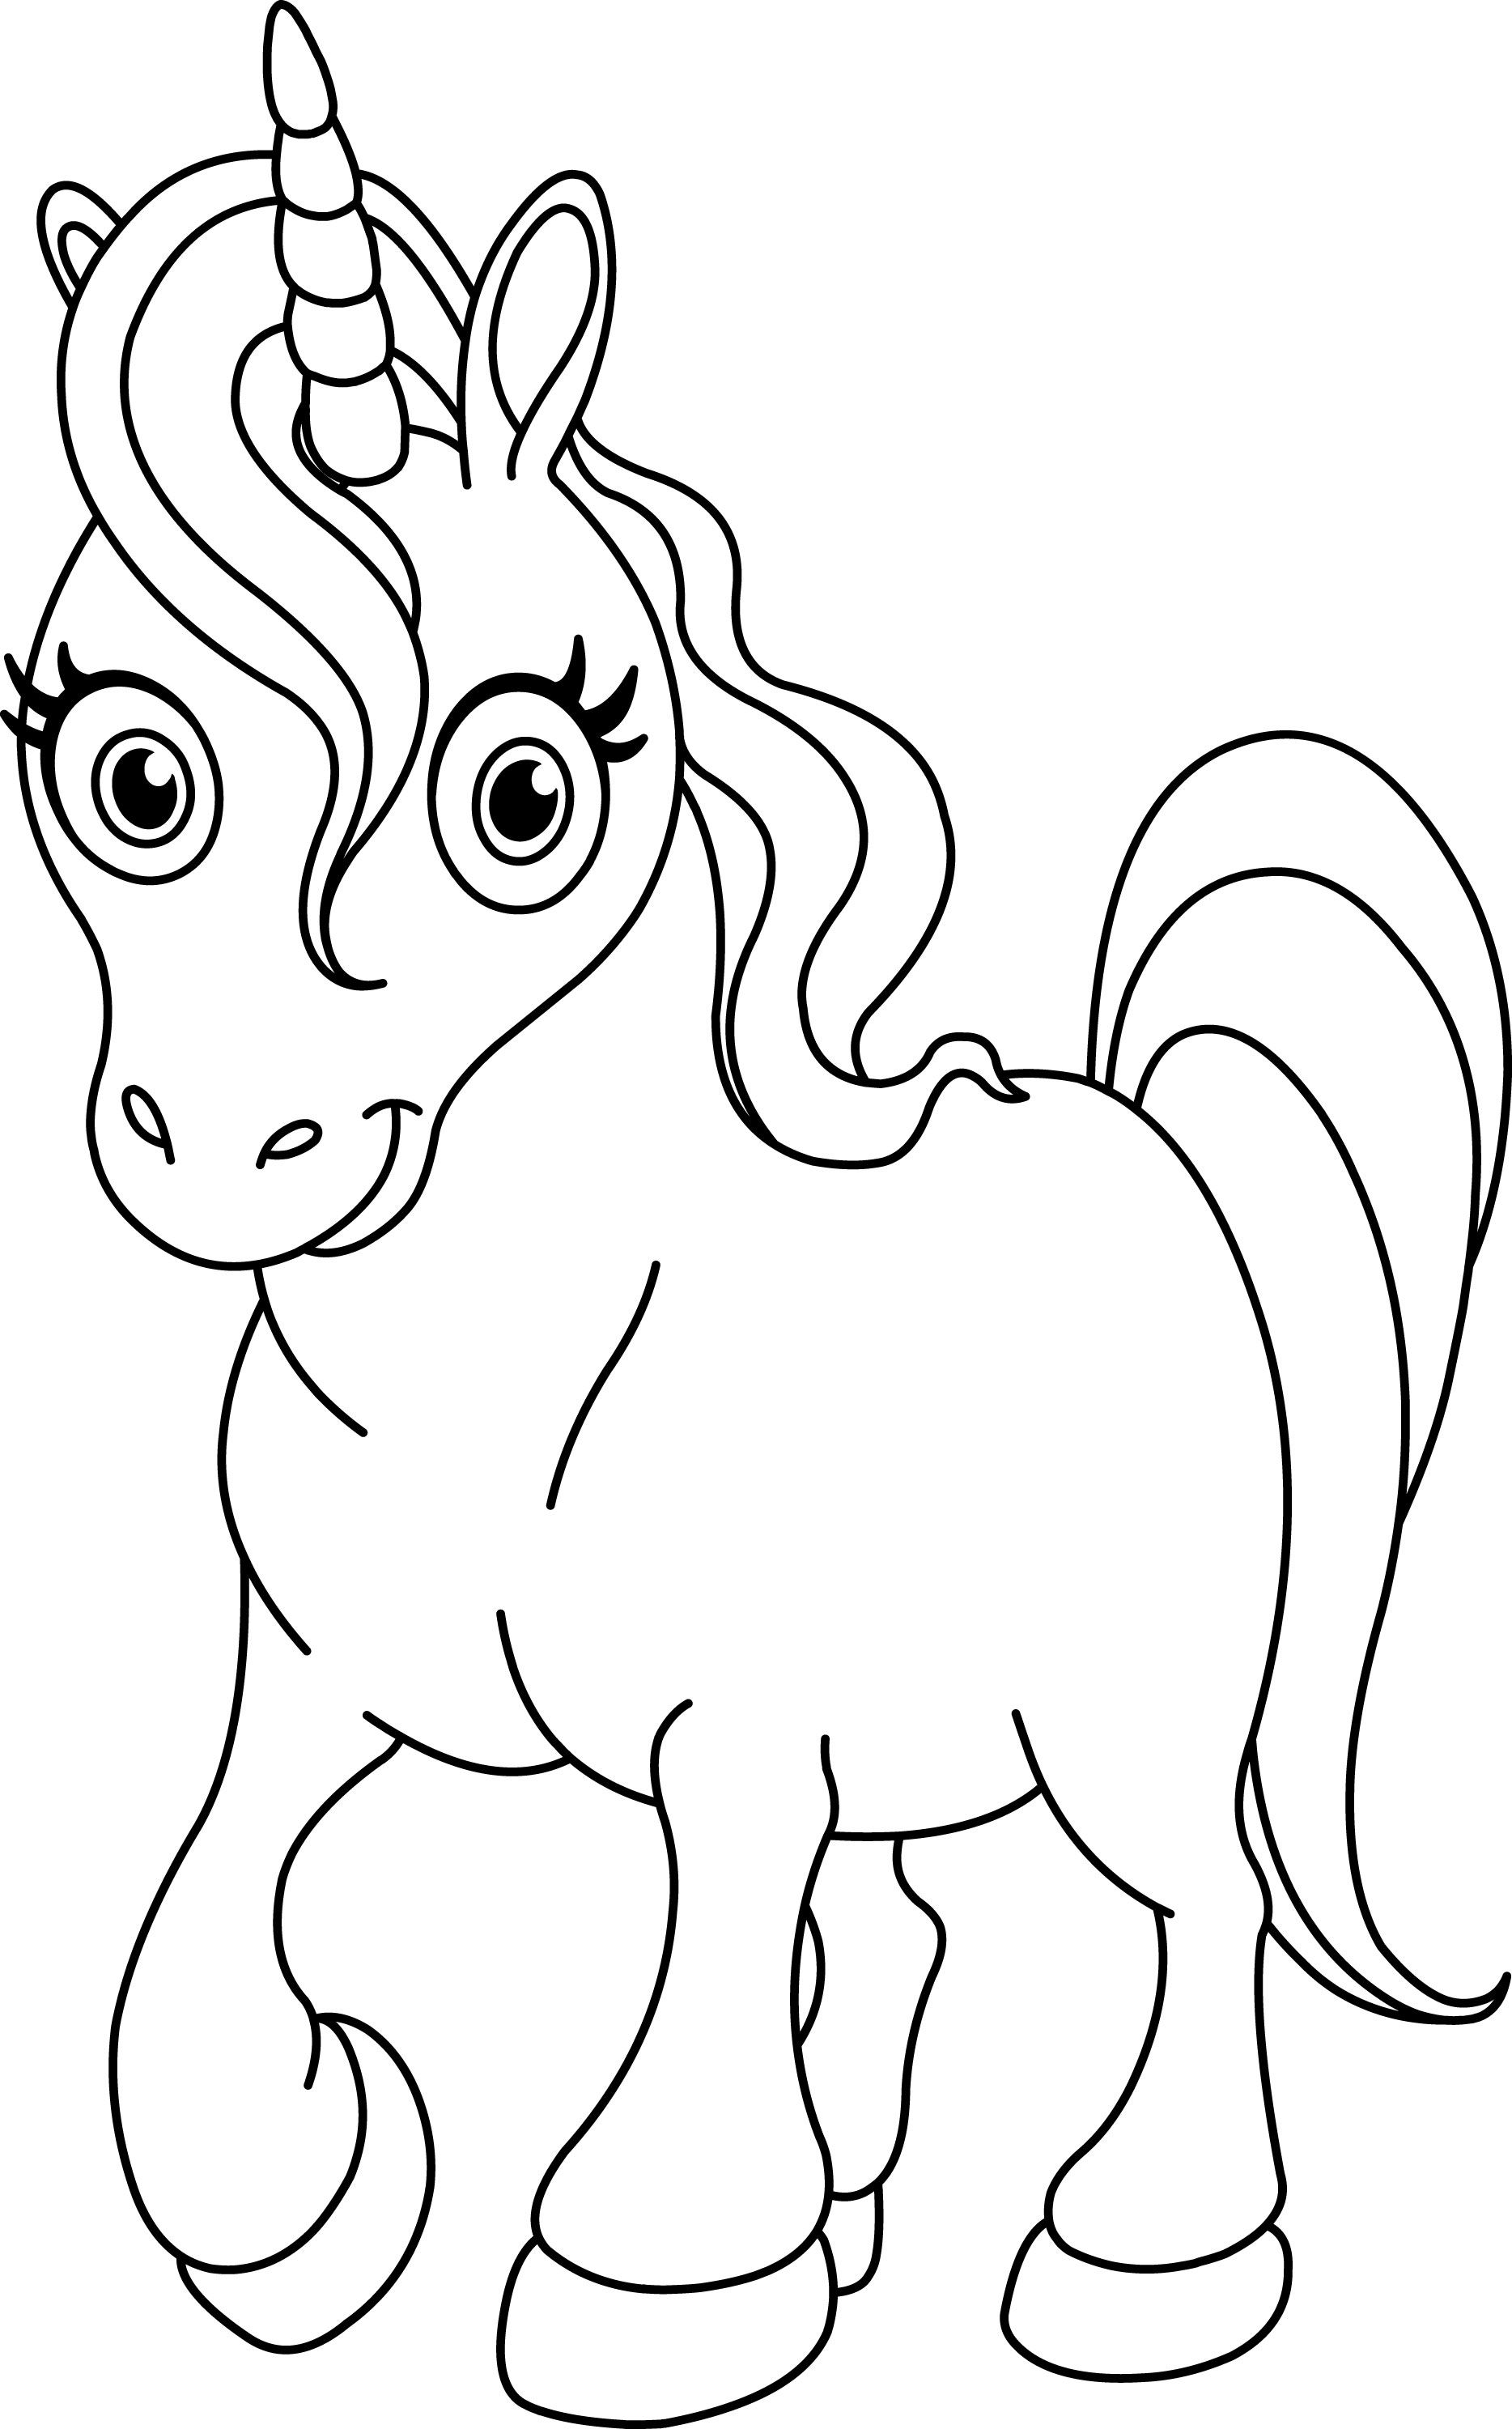 35 Unicorn Coloring Pages Coloringstar Unicorn Coloring Pages